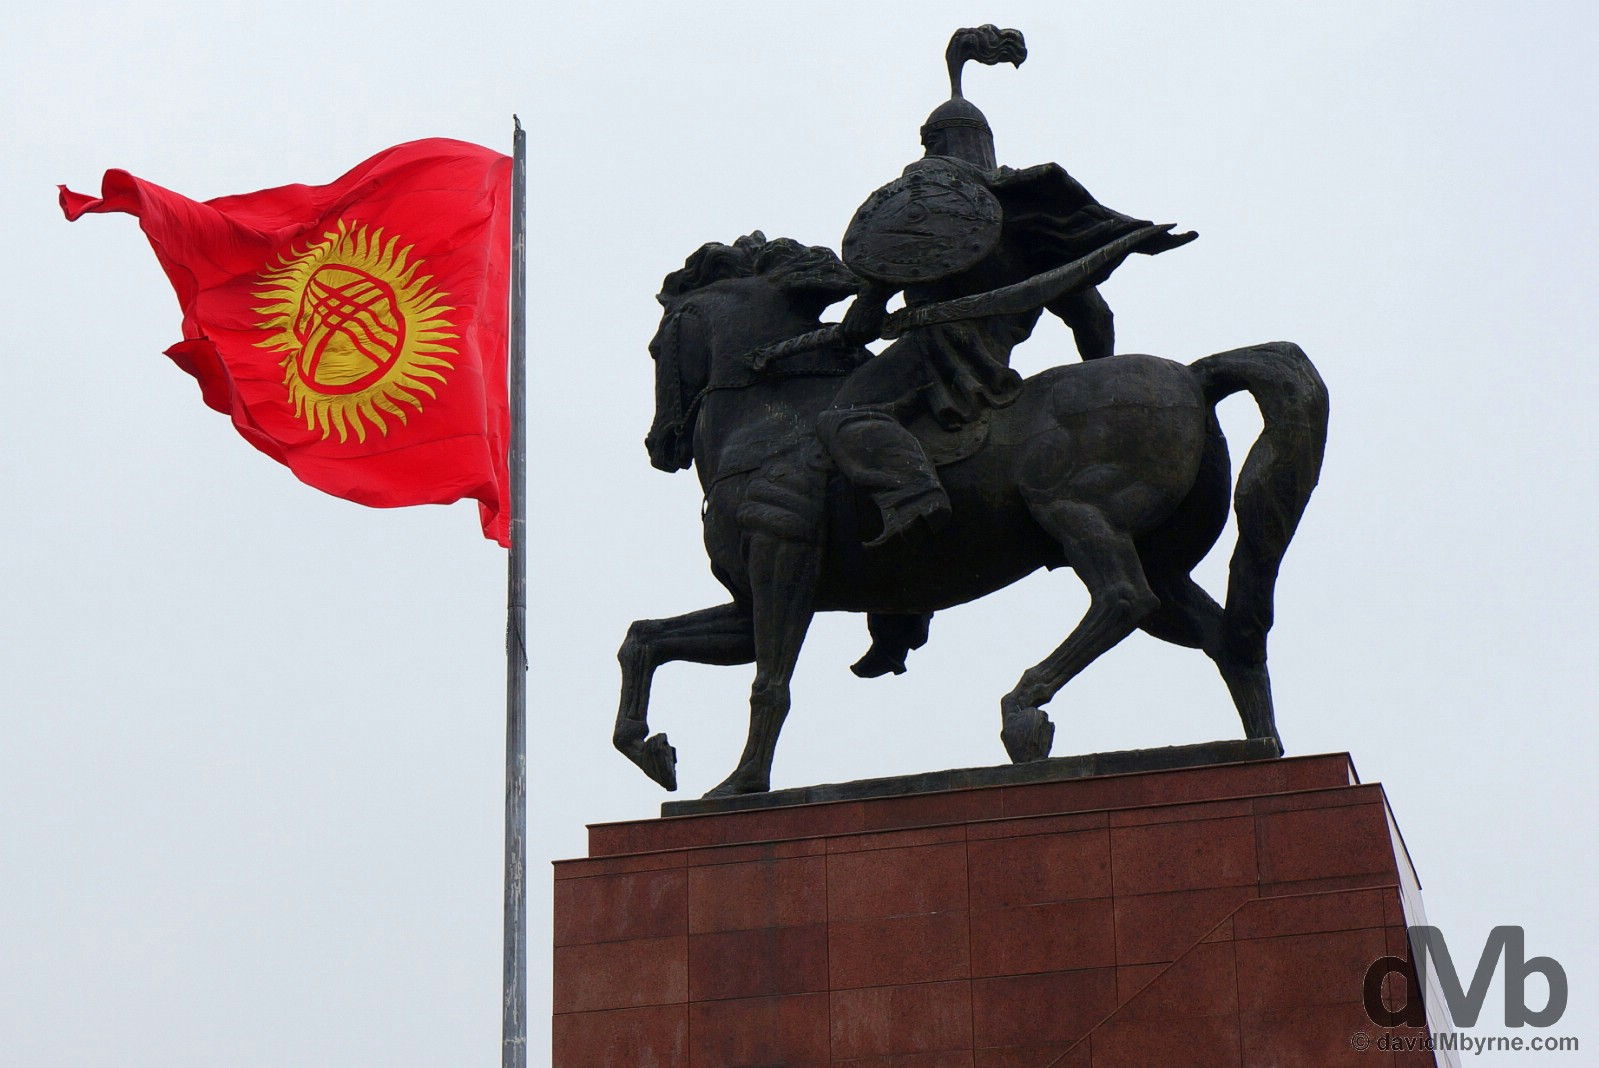 The Manas statue and Kyrgyz flag in Ala-Too Square, central Bishkek. February 25, 2005.